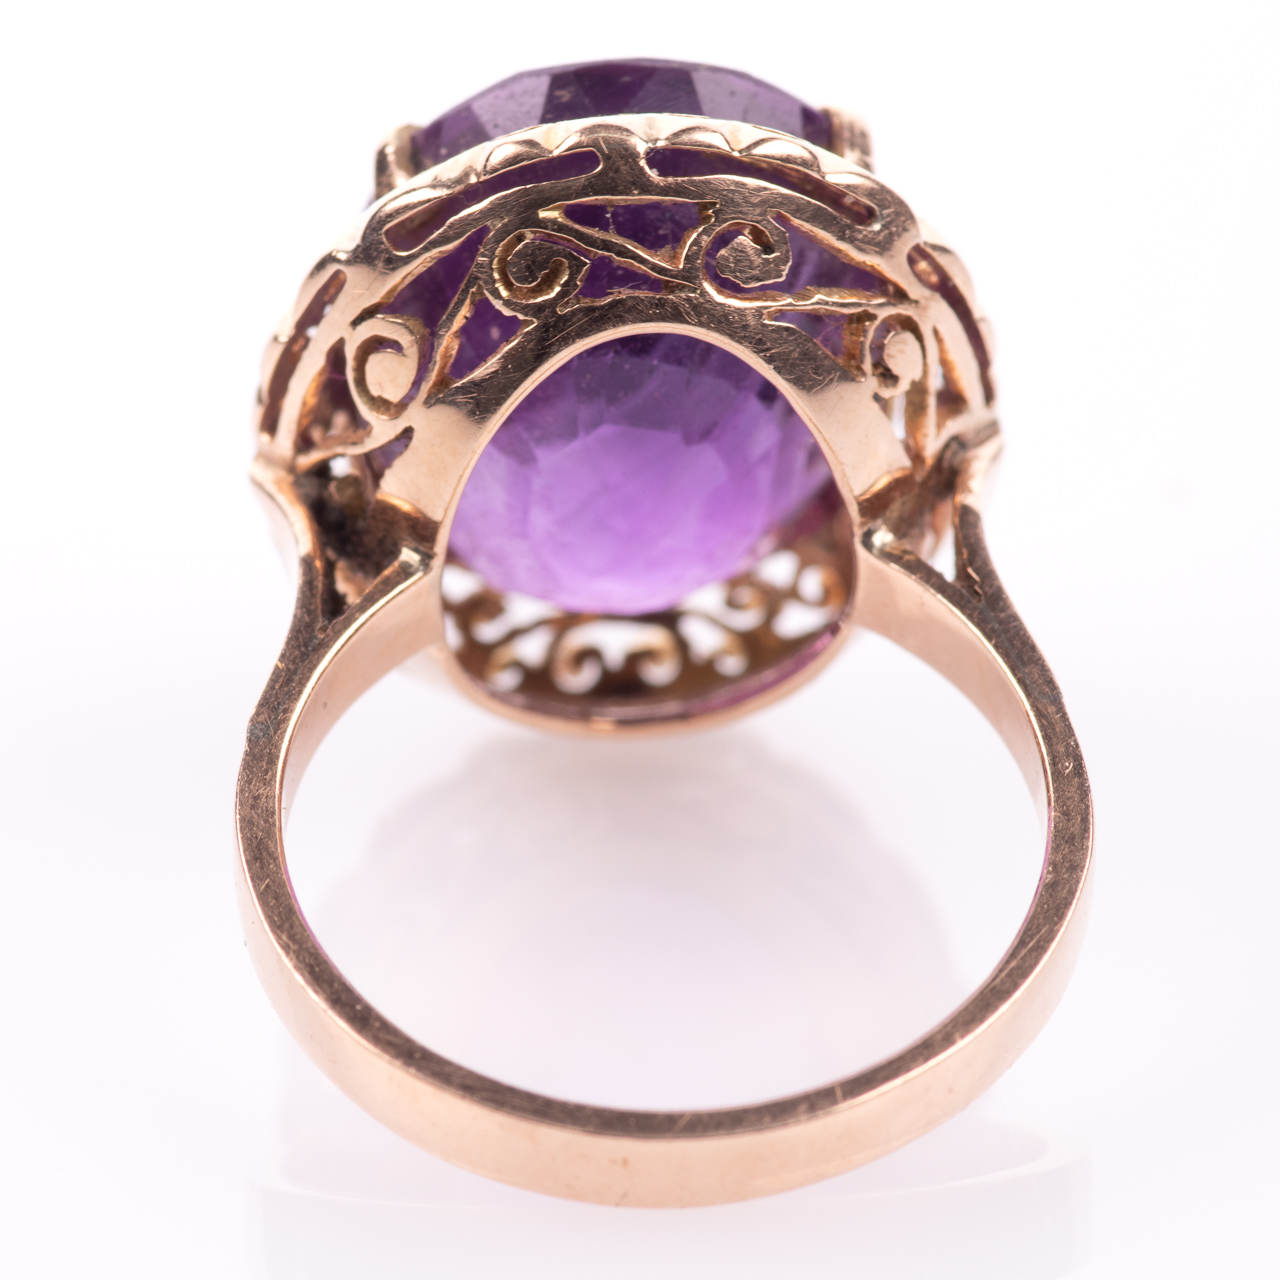 14ct Gold Amethyst Ring - Image 6 of 7